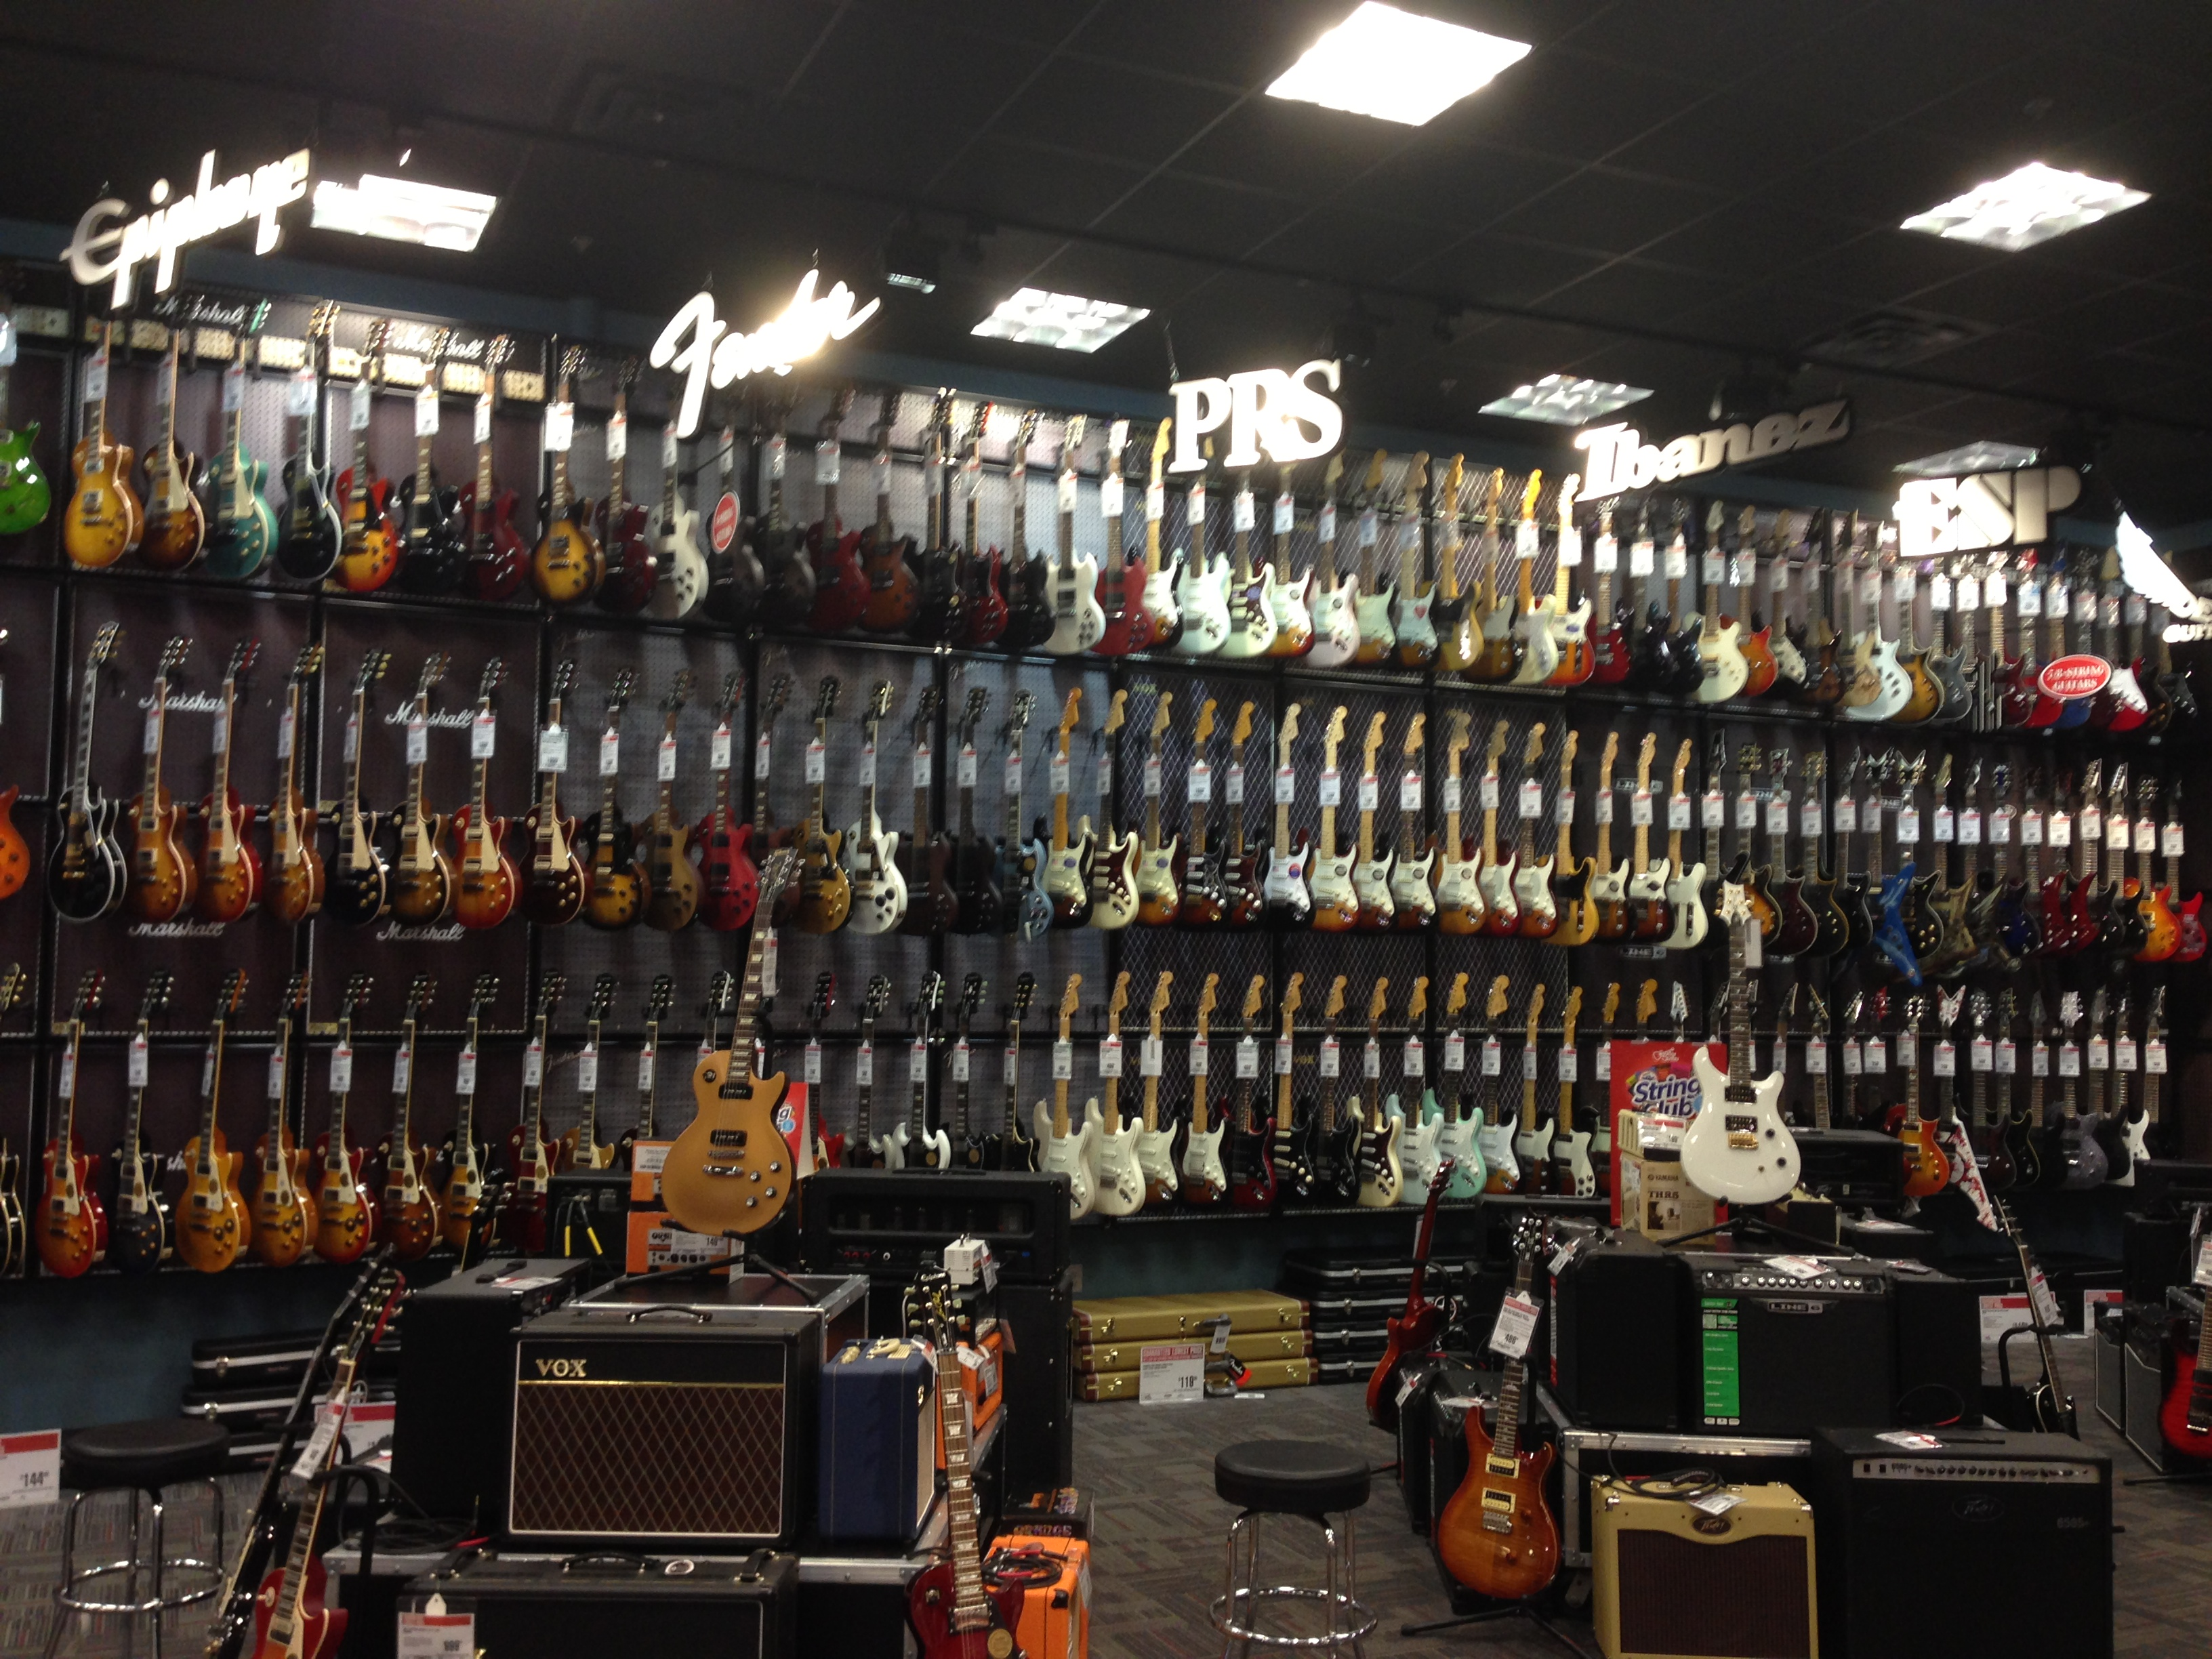 guitar center lessons raritan nj business page. Black Bedroom Furniture Sets. Home Design Ideas